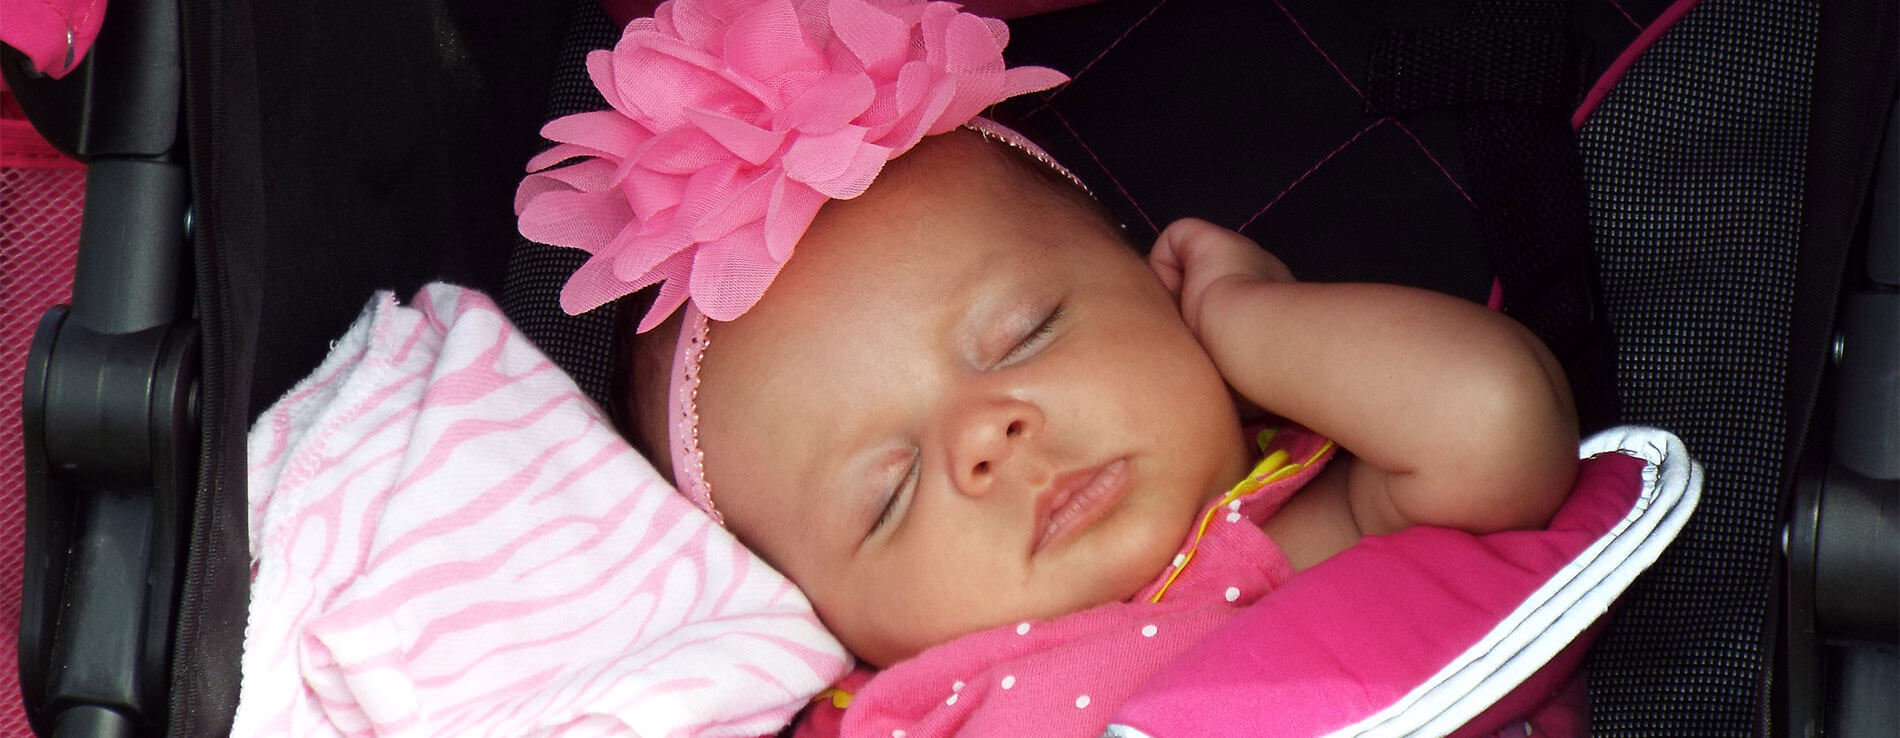 A sleeping baby in her car seat. She is snuggling a pink blanket and is wearing a pink hair band.